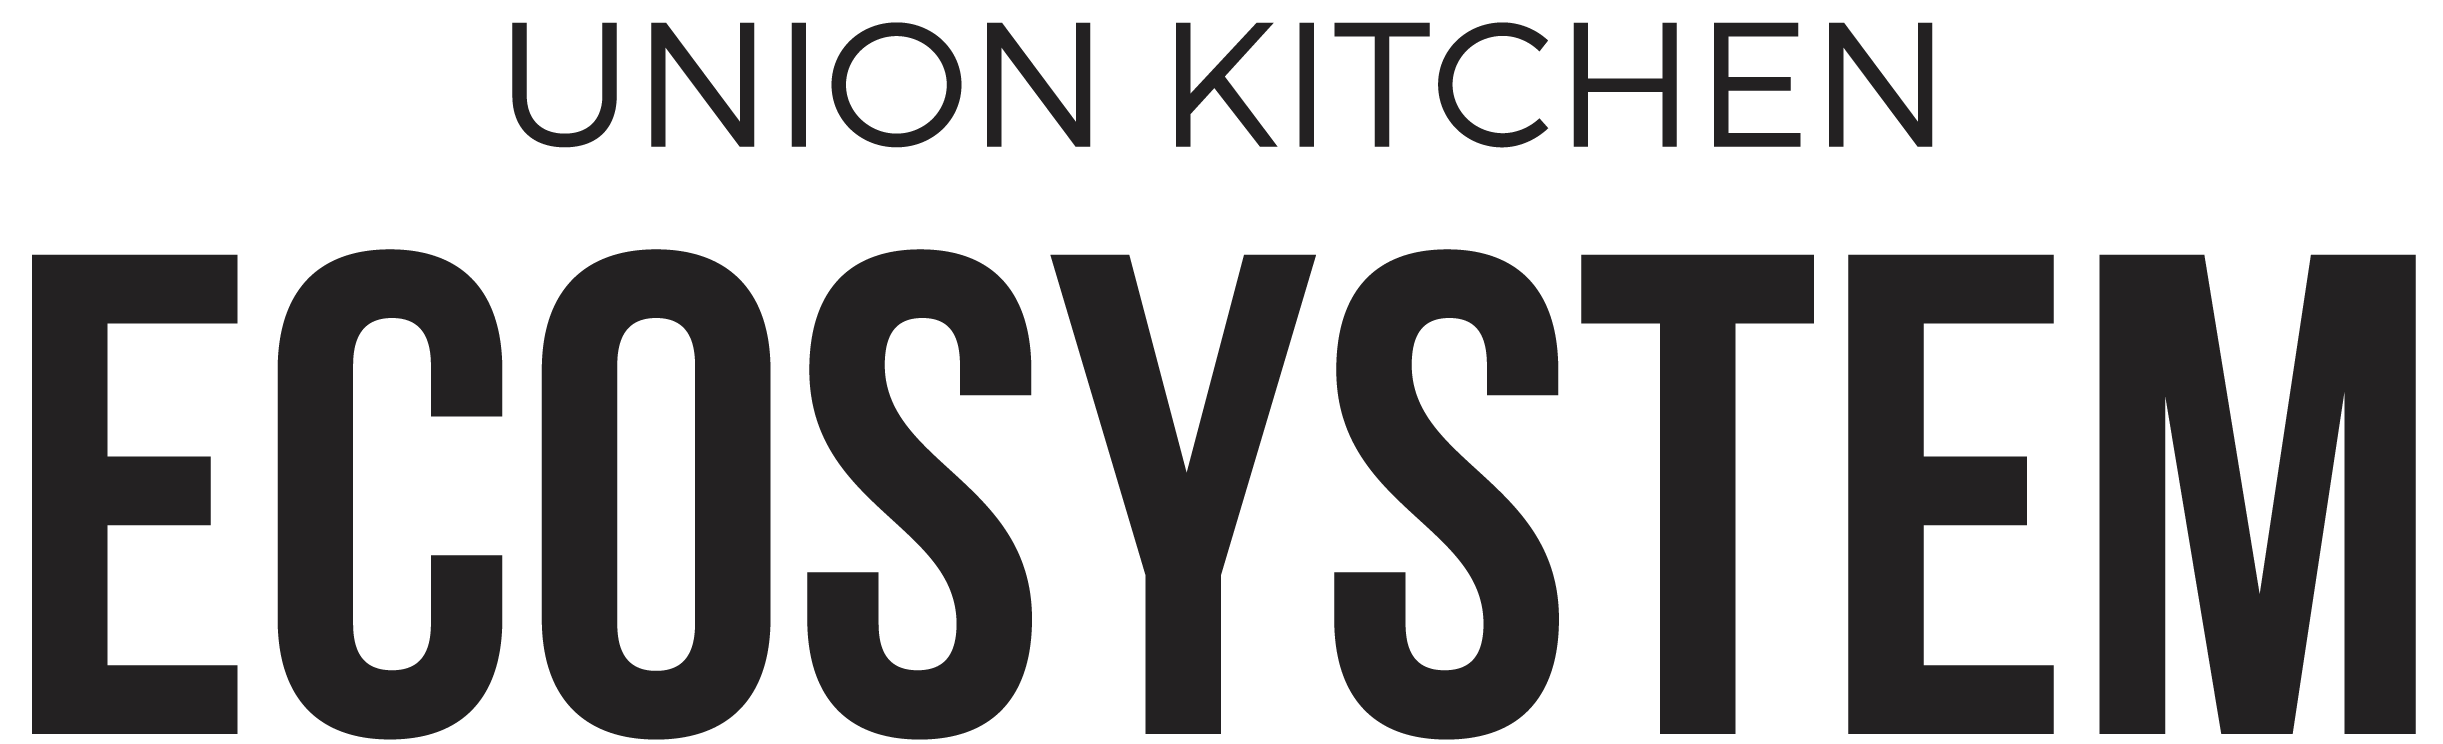 Union Kitchen Food Ecosystem